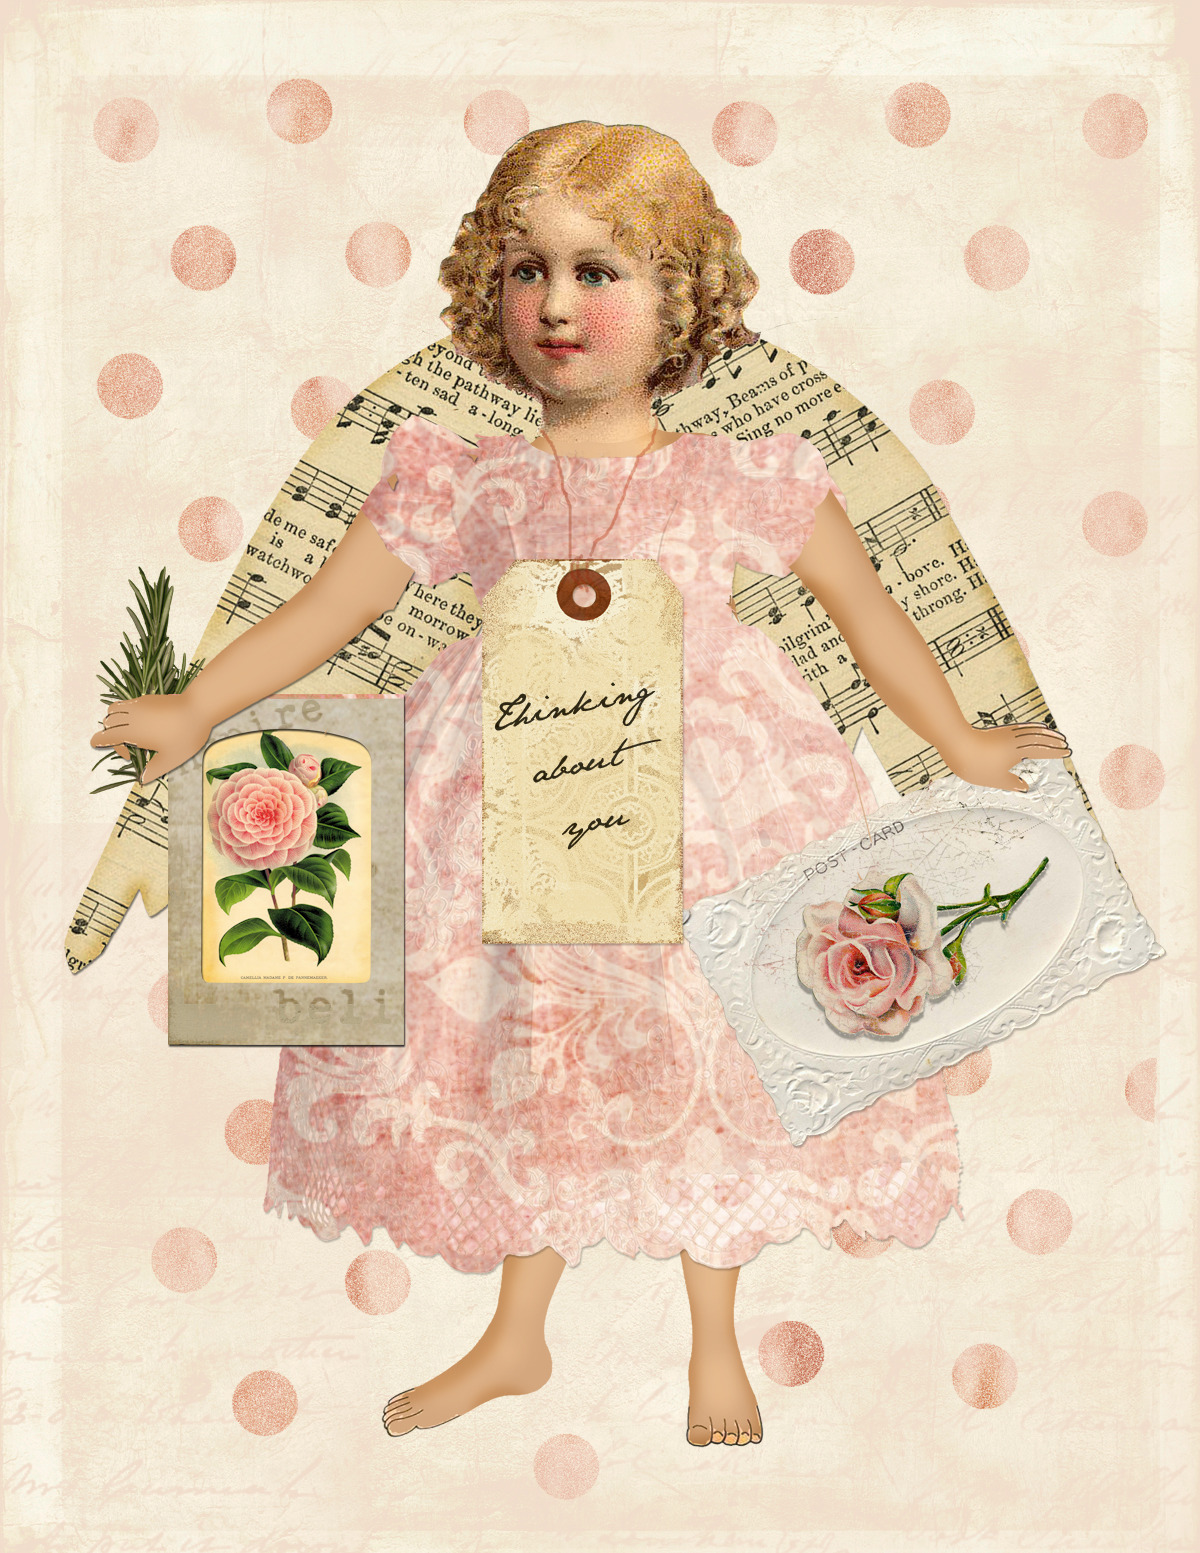 I'm loving this digital montage I made in photoshop. Girly pink & vintage images make my heart sing.  Just right click & save to print out. Makes a sweet card. Enjoy.